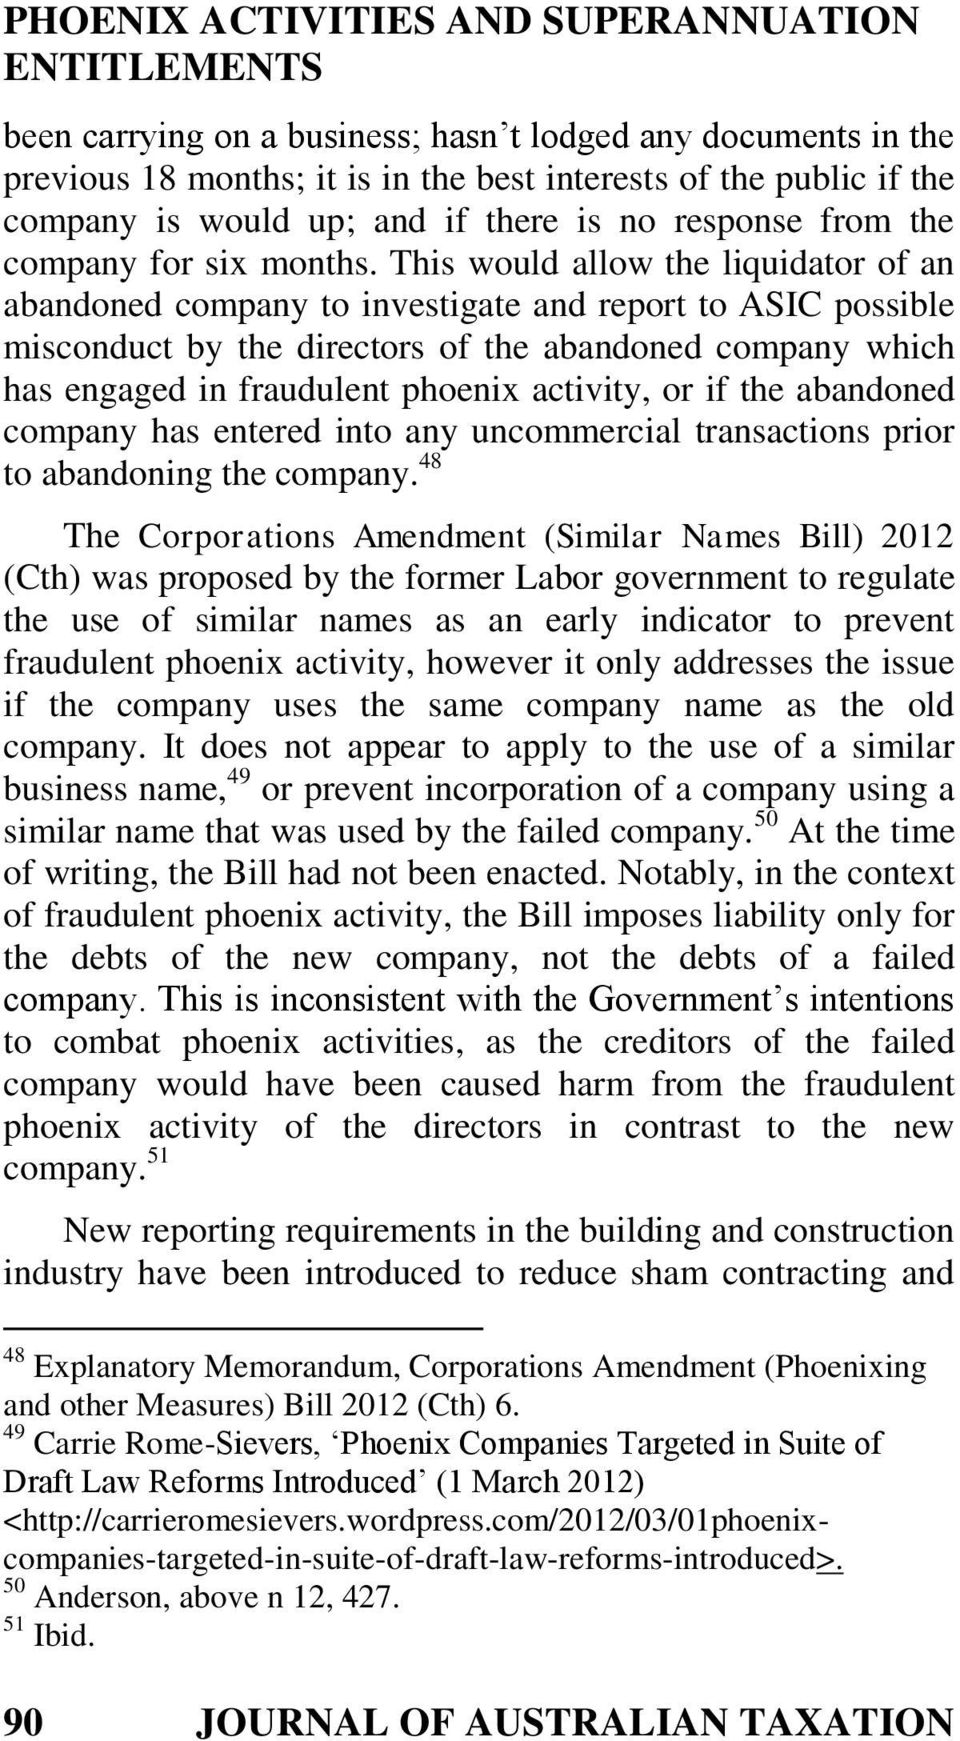 This would allow the liquidator of an abandoned company to investigate and report to ASIC possible misconduct by the directors of the abandoned company which has engaged in fraudulent phoenix